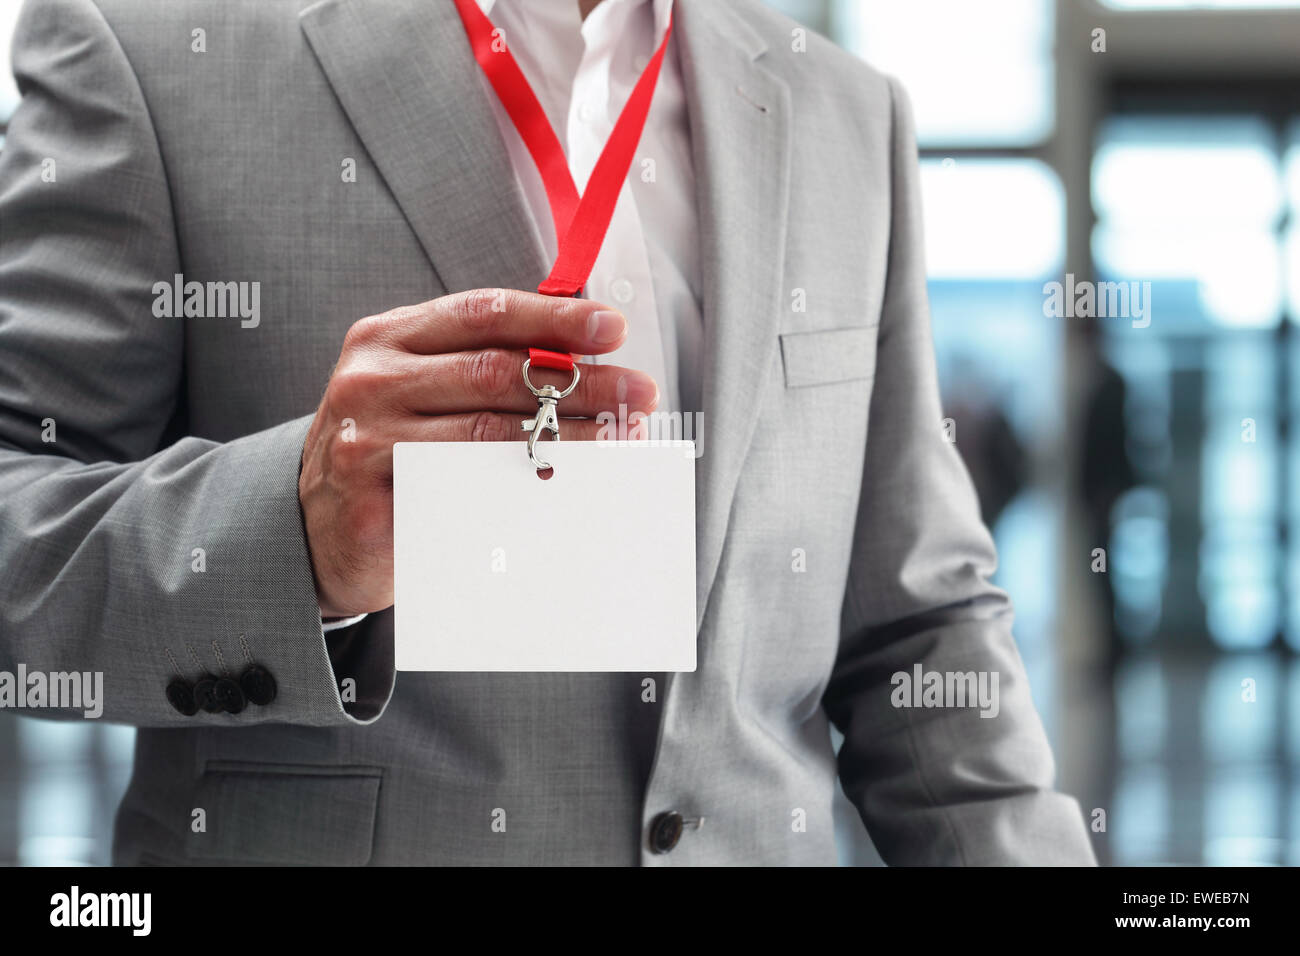 Businessman holding blank ID badge - Stock Image